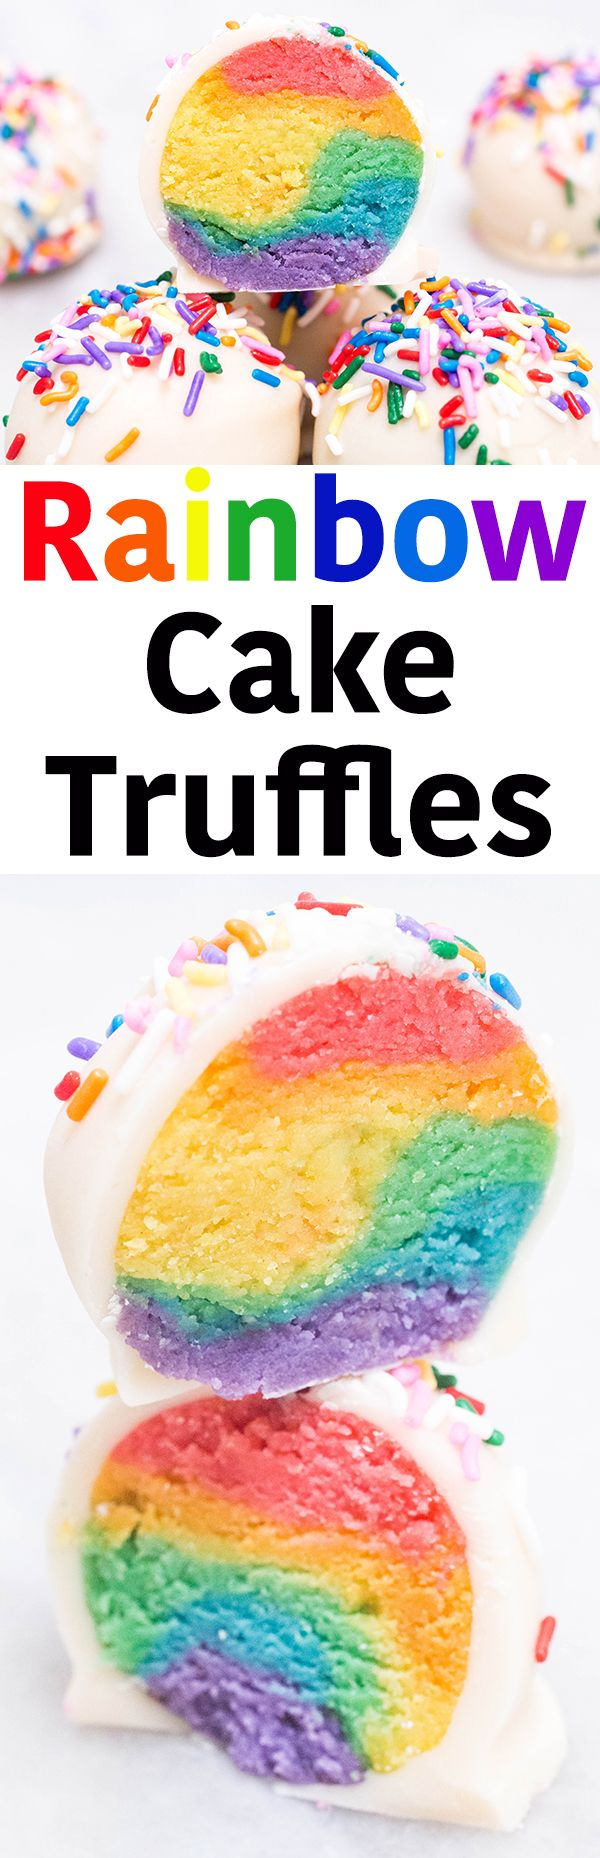 These colorful and tasty rainbow cake truffle desserts are a breeze to make! Like a cake pop without the stick.Great birthday recipe! Easy to follow recipe instructions and photos.